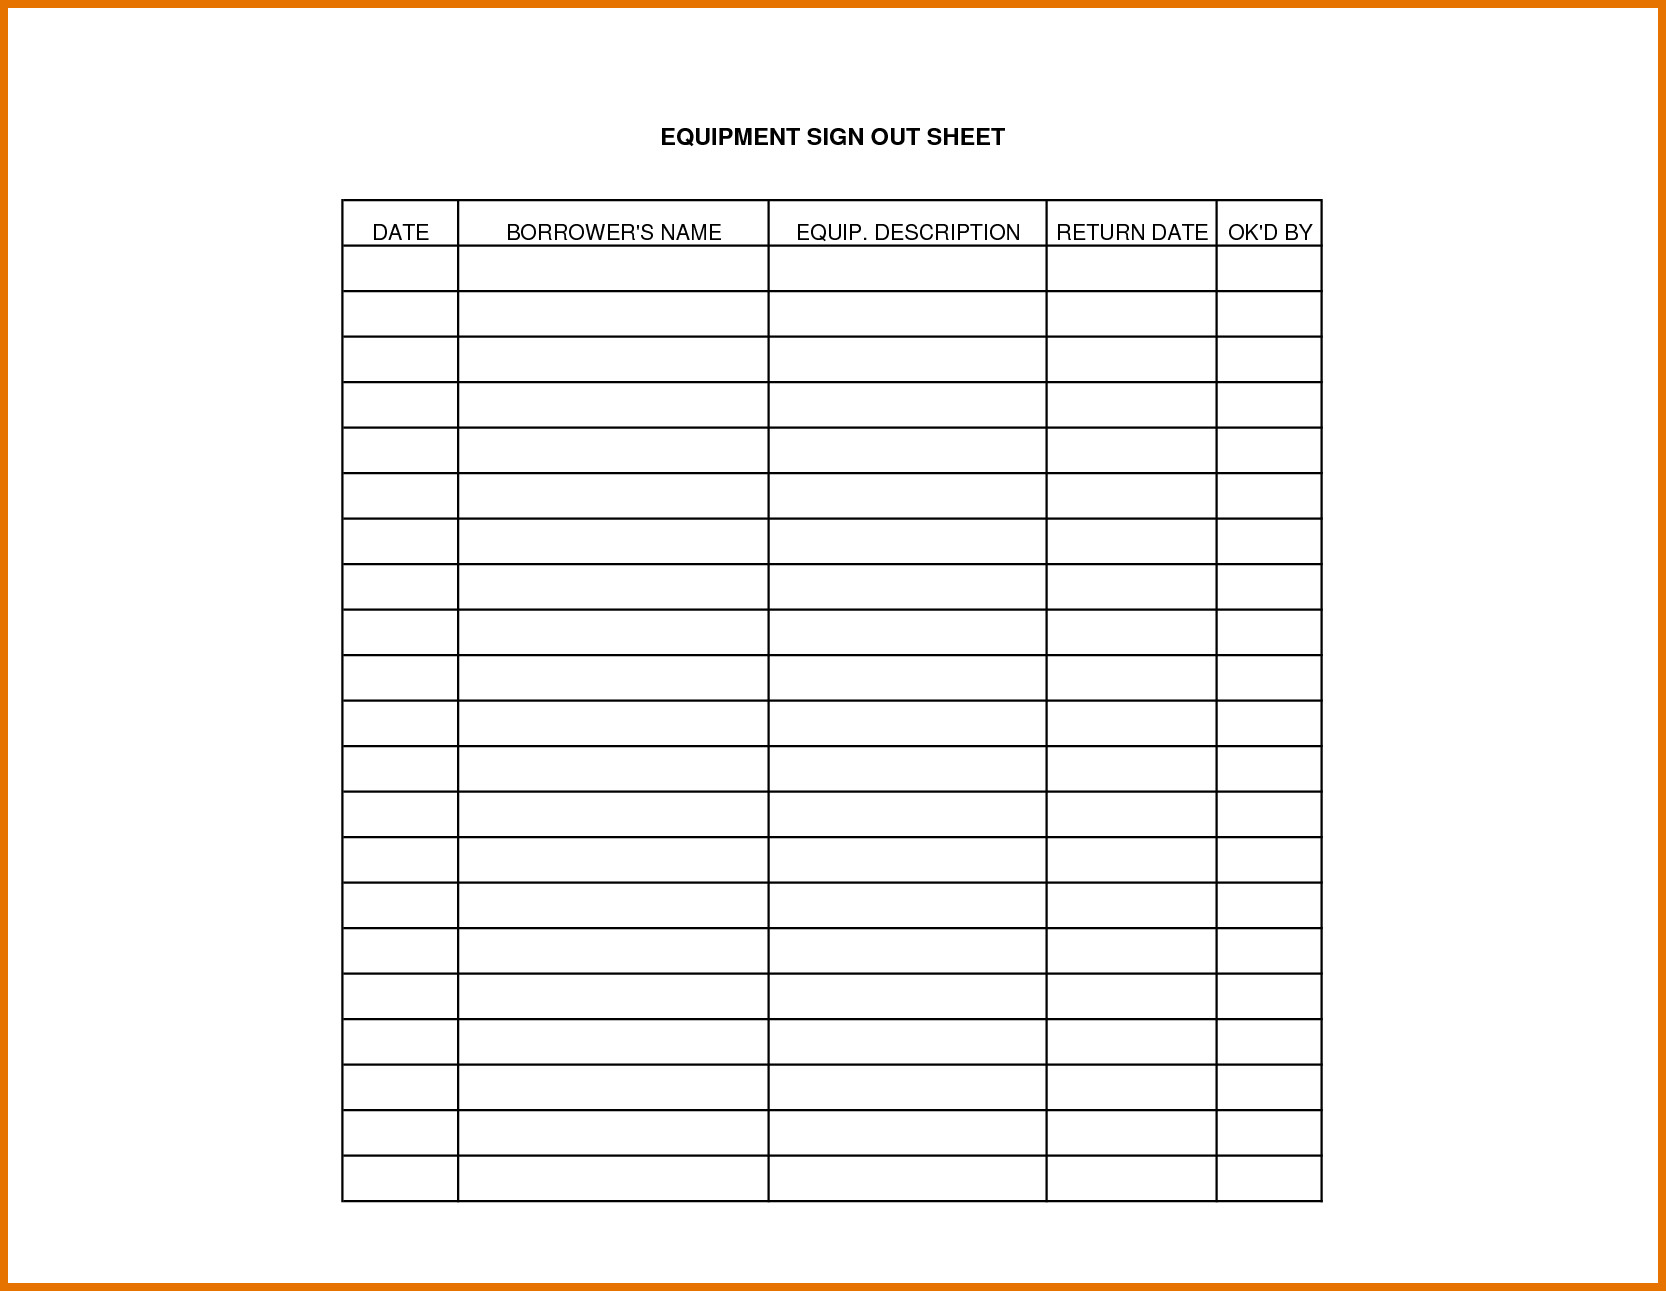 Key Sign Out Sheet Equipment Sign Out Sheet Template